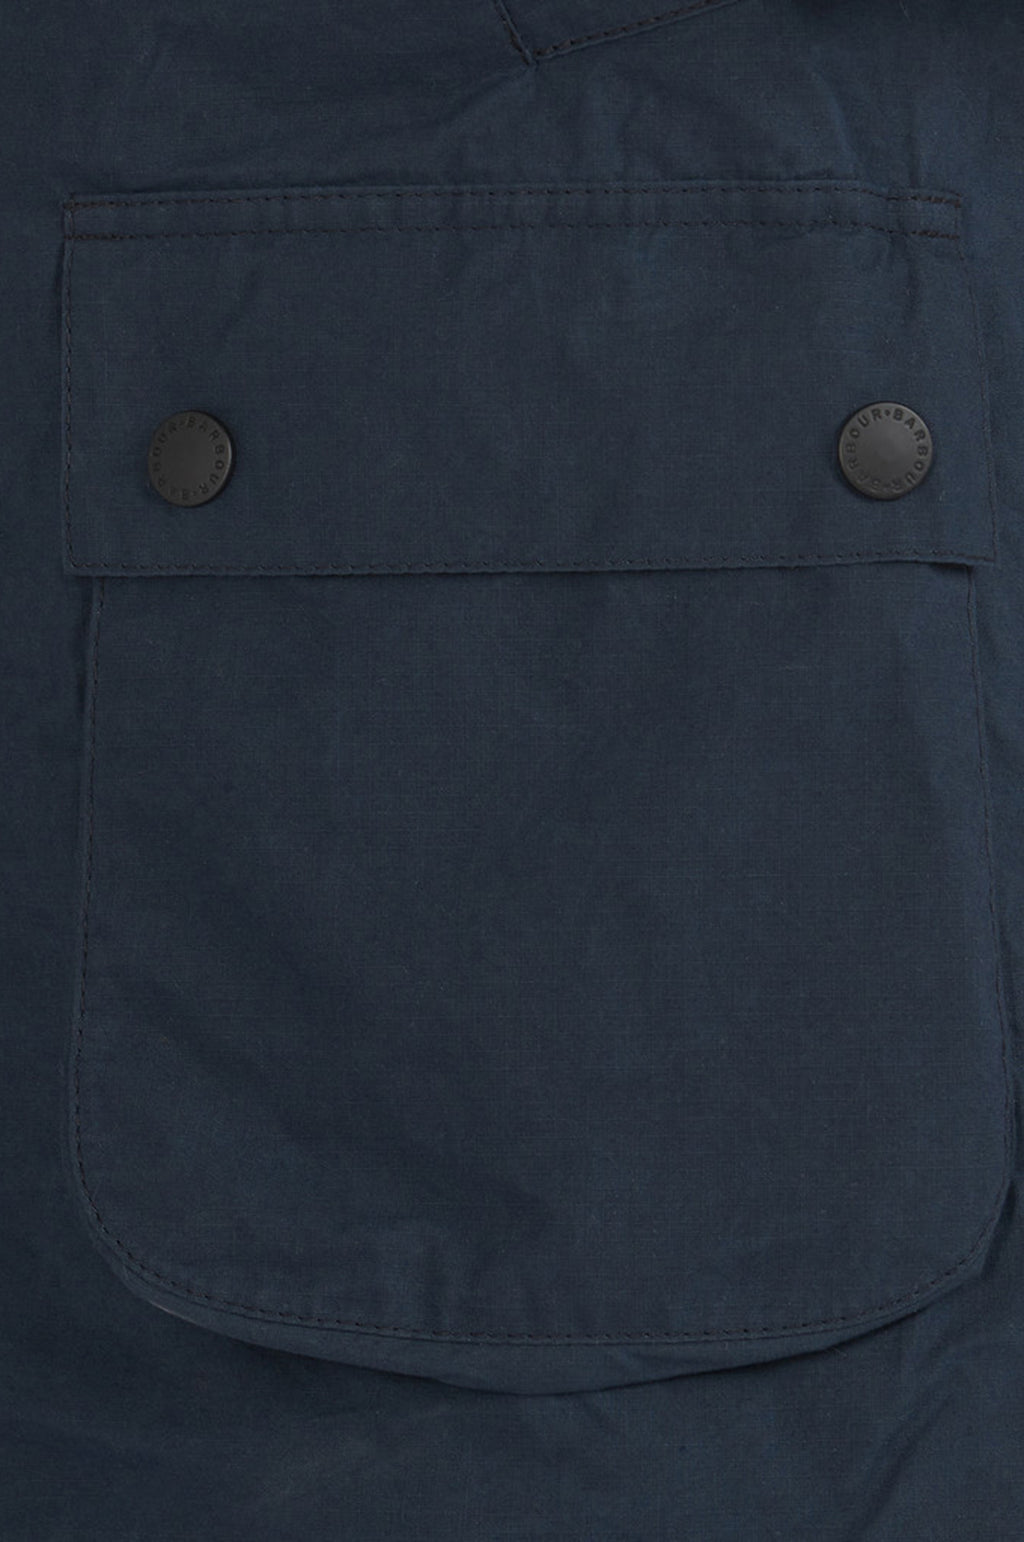 Slim Bedale Jacket in Navy (White Label)